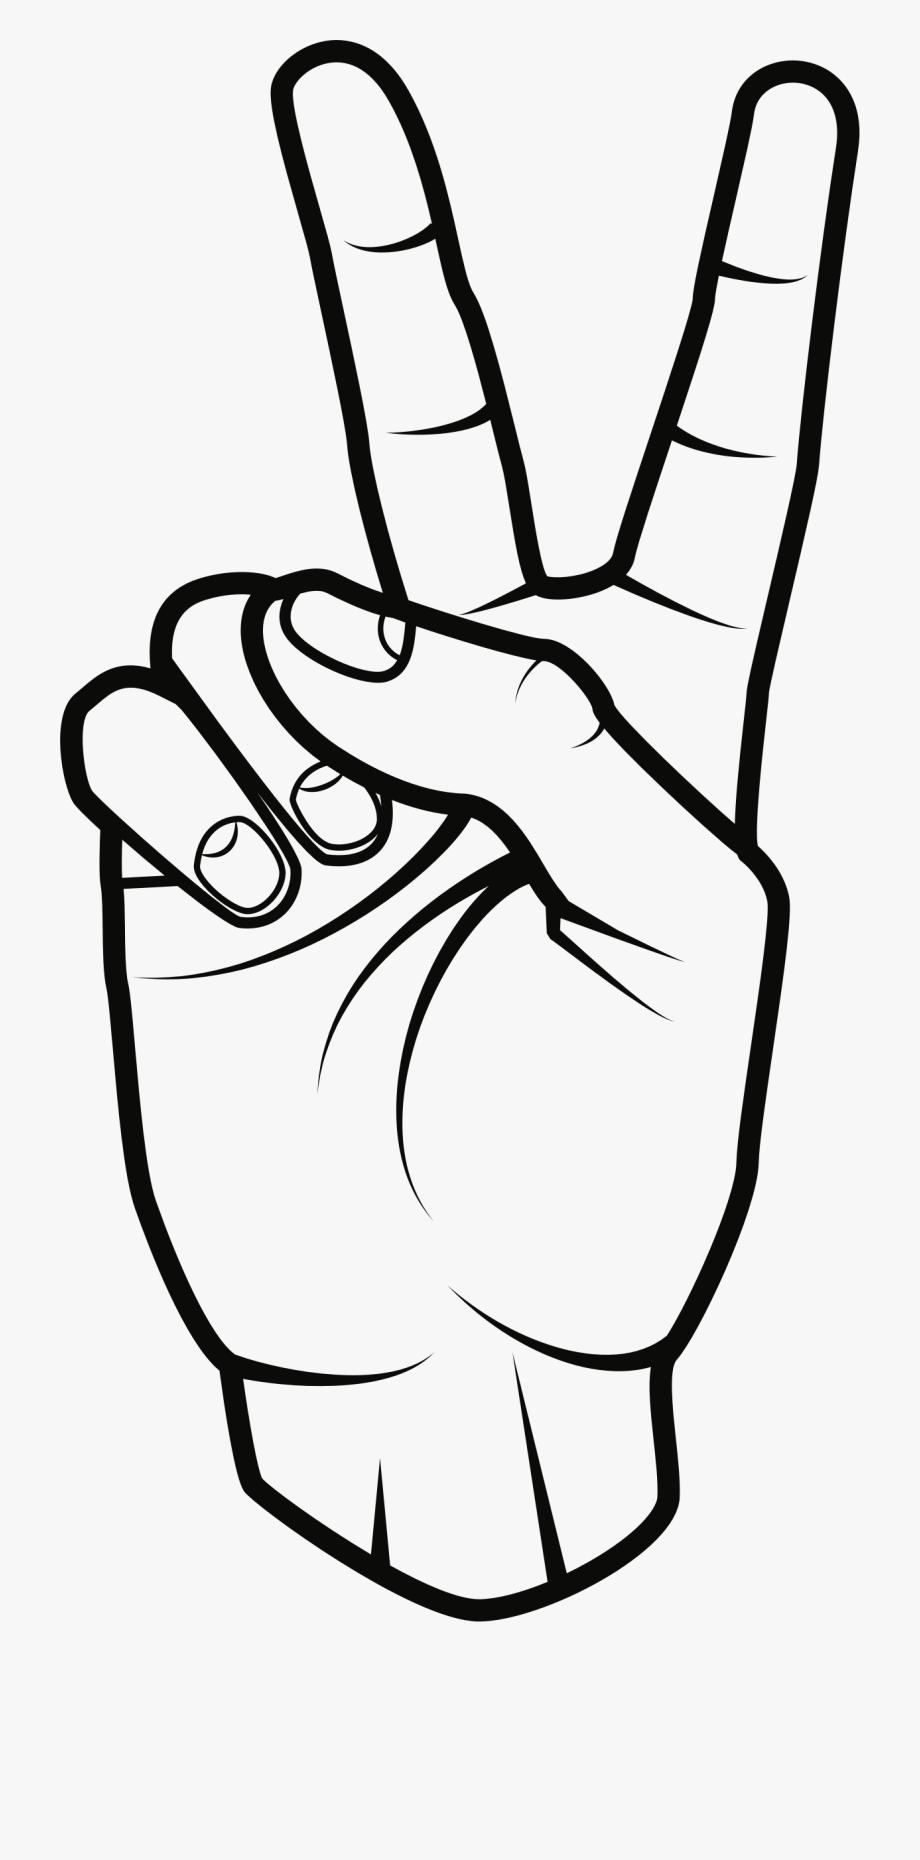 Peace sign hand clipart image library stock Peace Sign Clipart Black And White - Clip Art Peace Sign ... image library stock